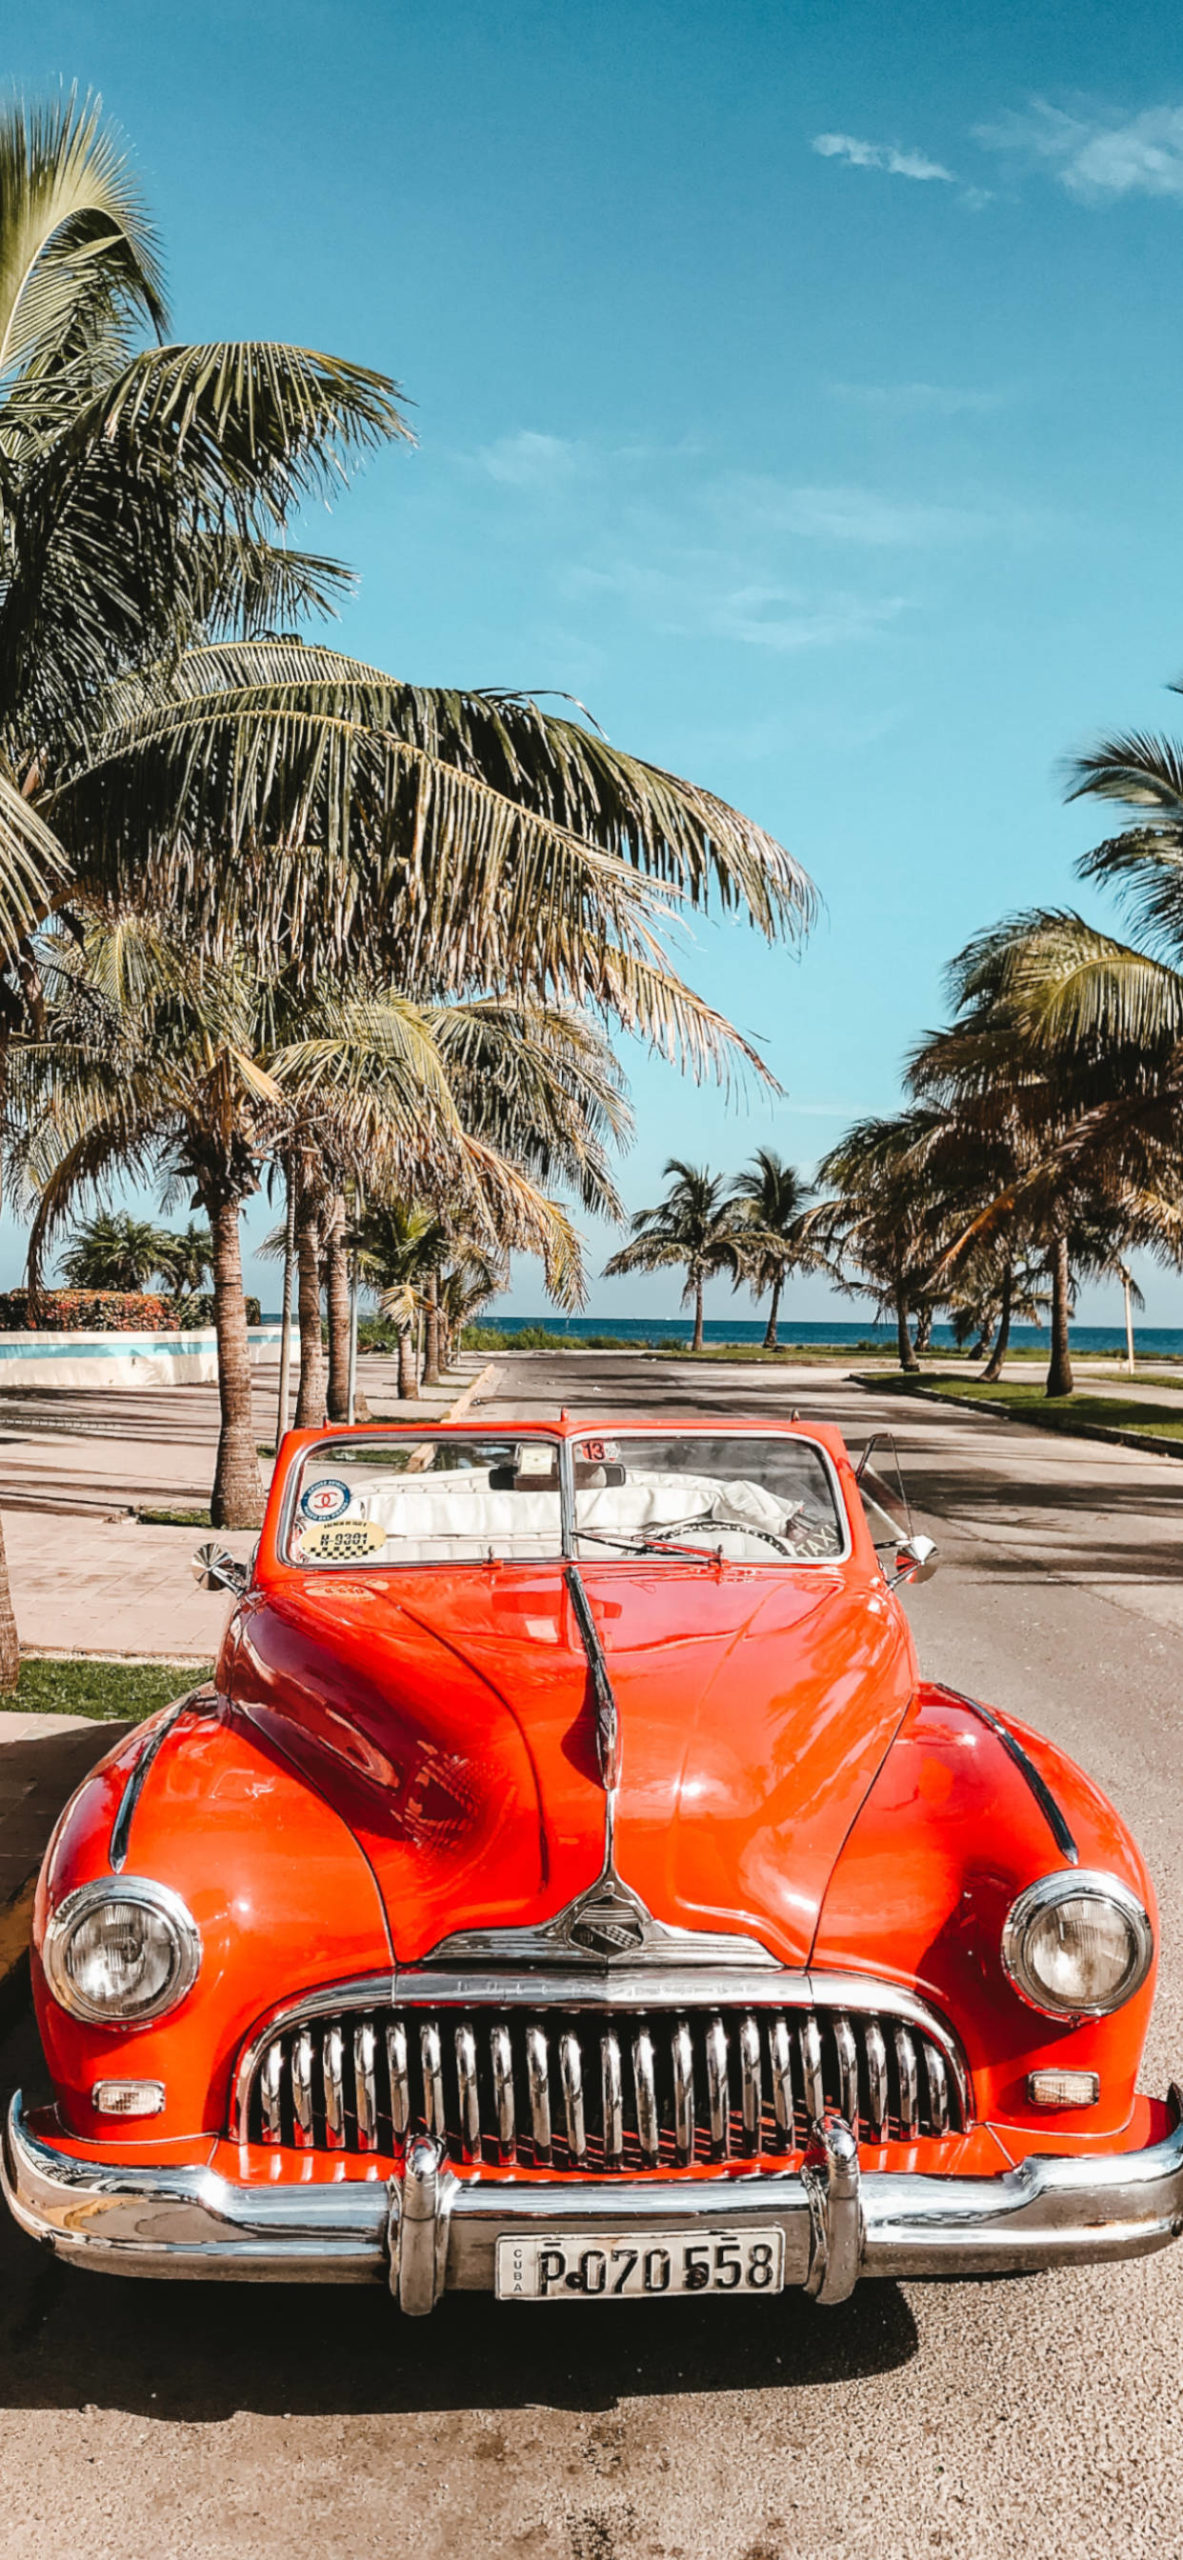 iPhone wallpapers cuba beach car scaled Cuba